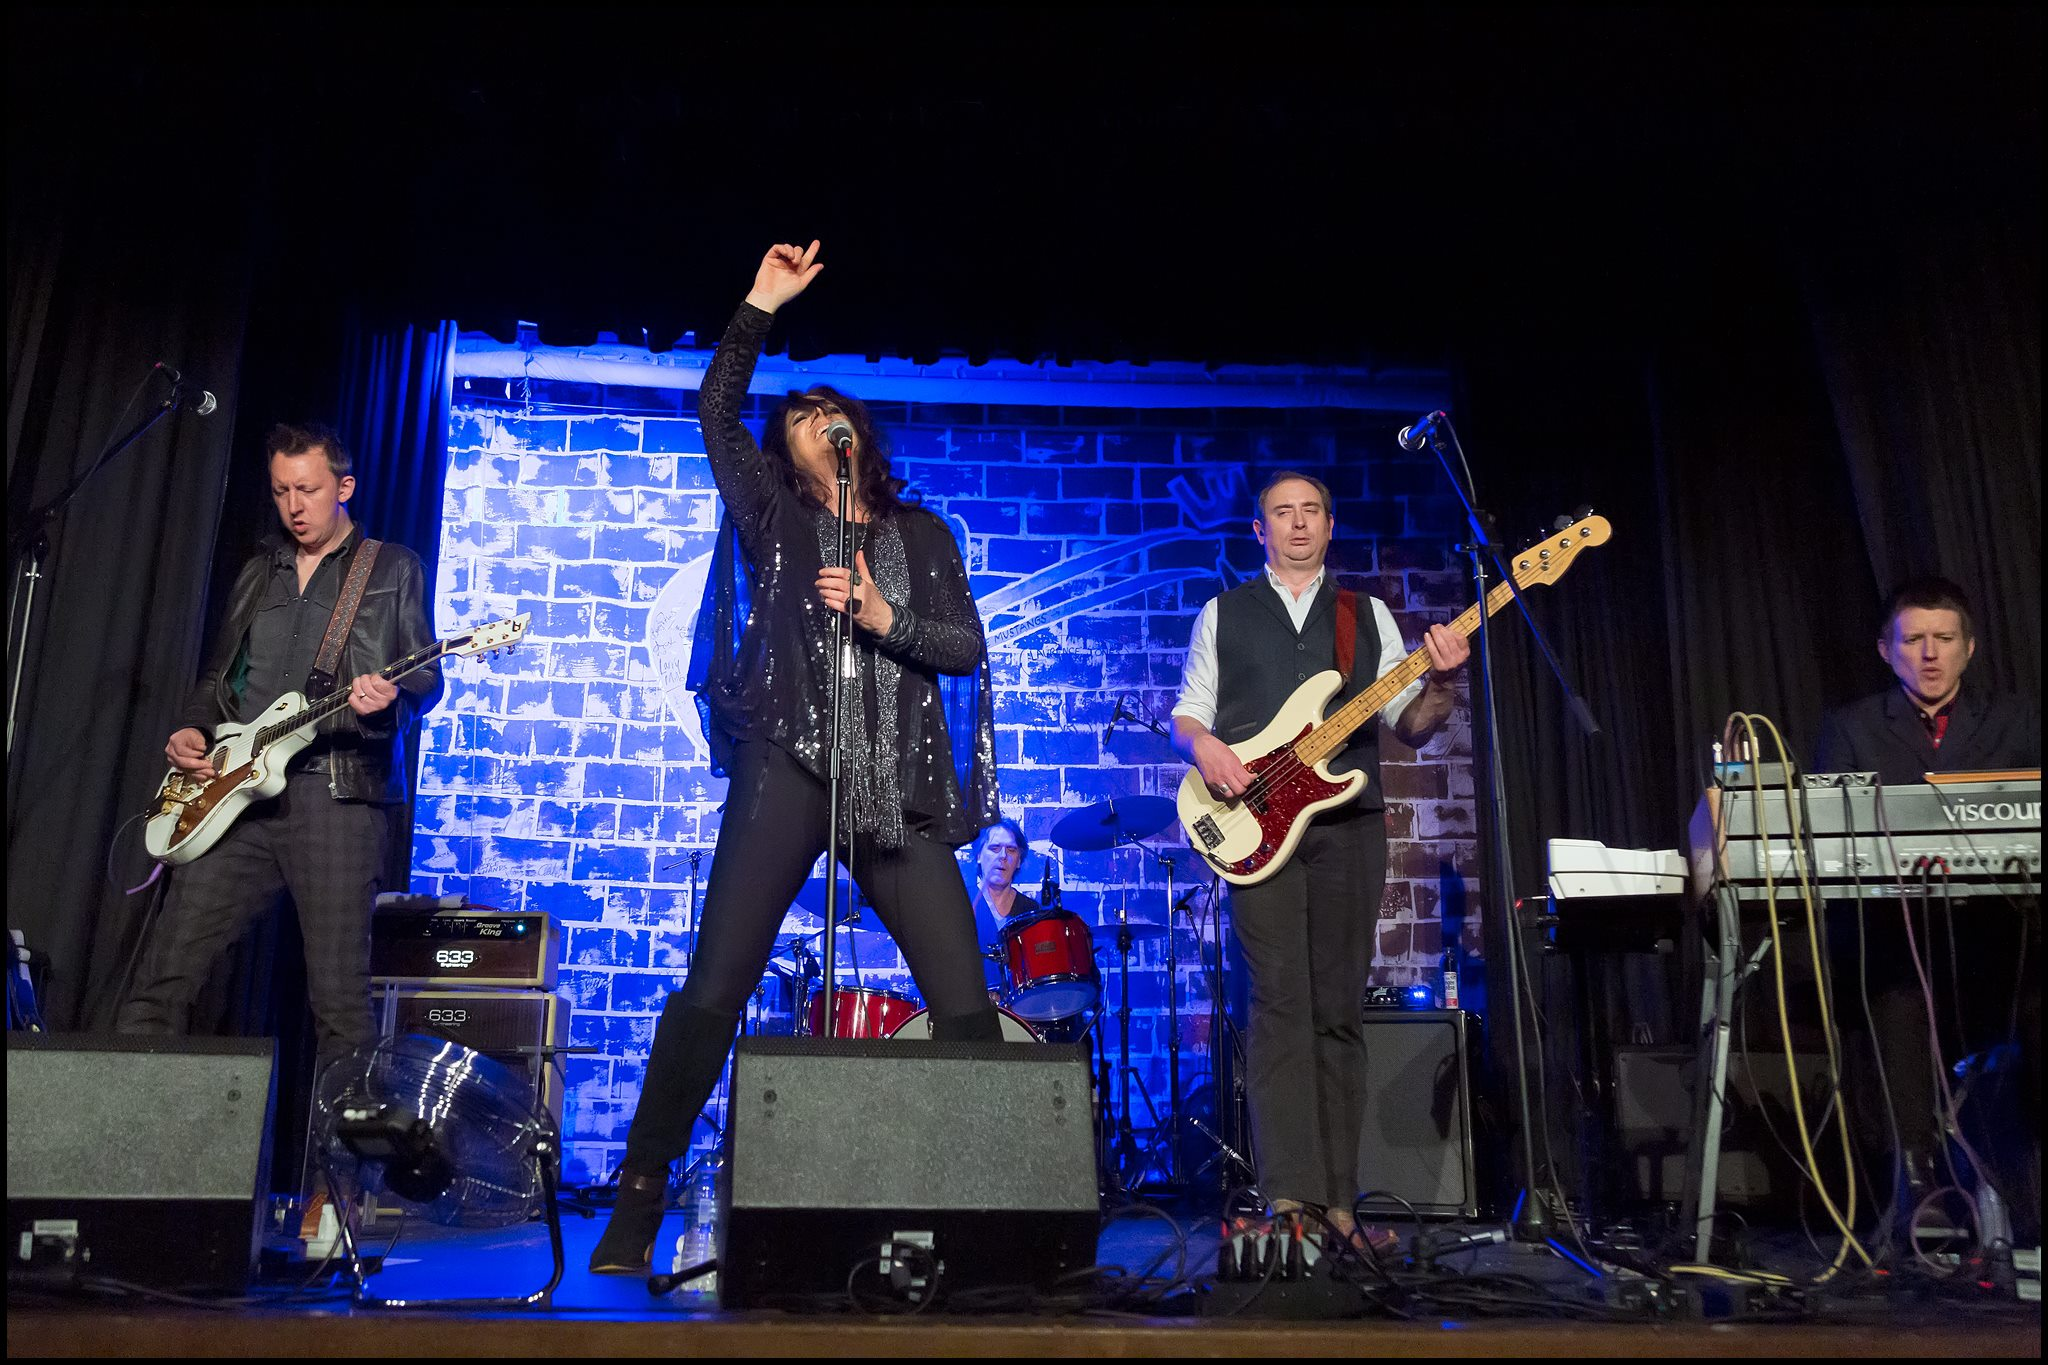 Sari Schorr at Sedgefield Blues Club